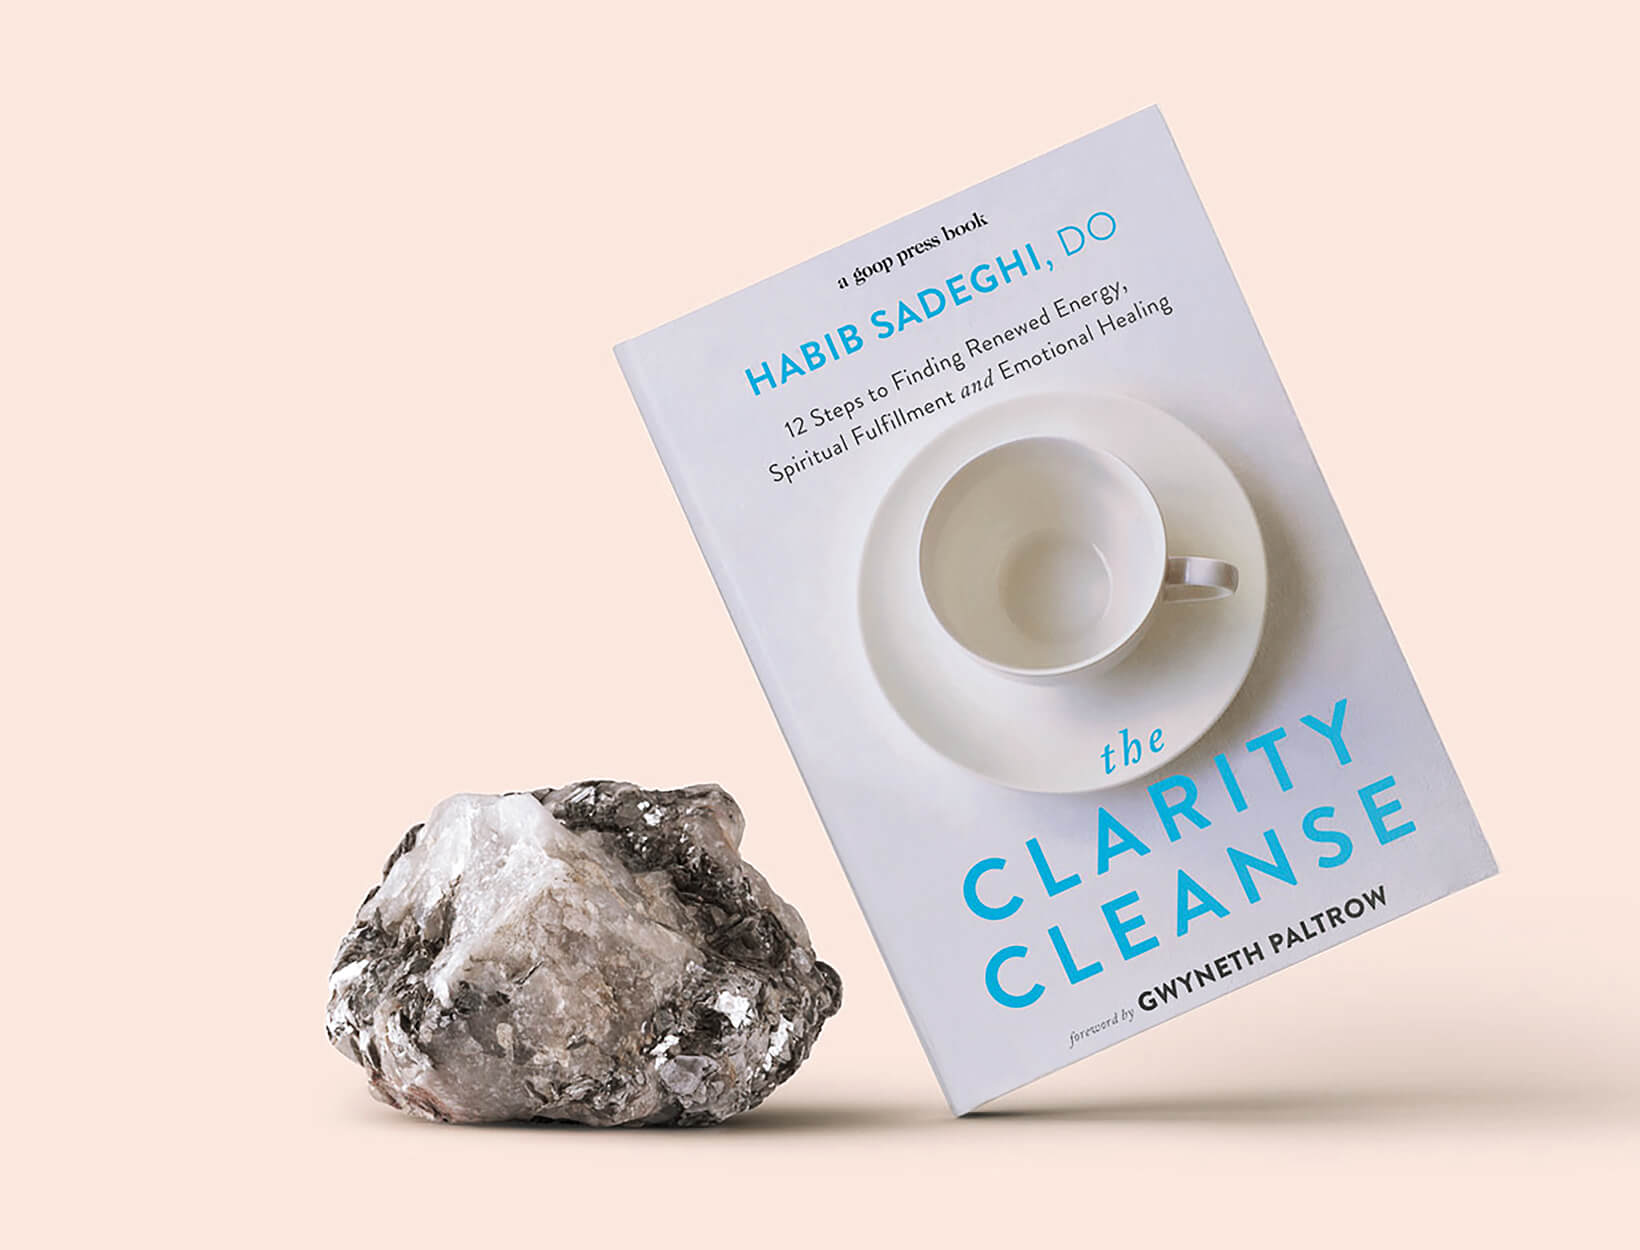 The Clarity Cleanse book standing on the bottom left corner next to a silver colored mineral rock